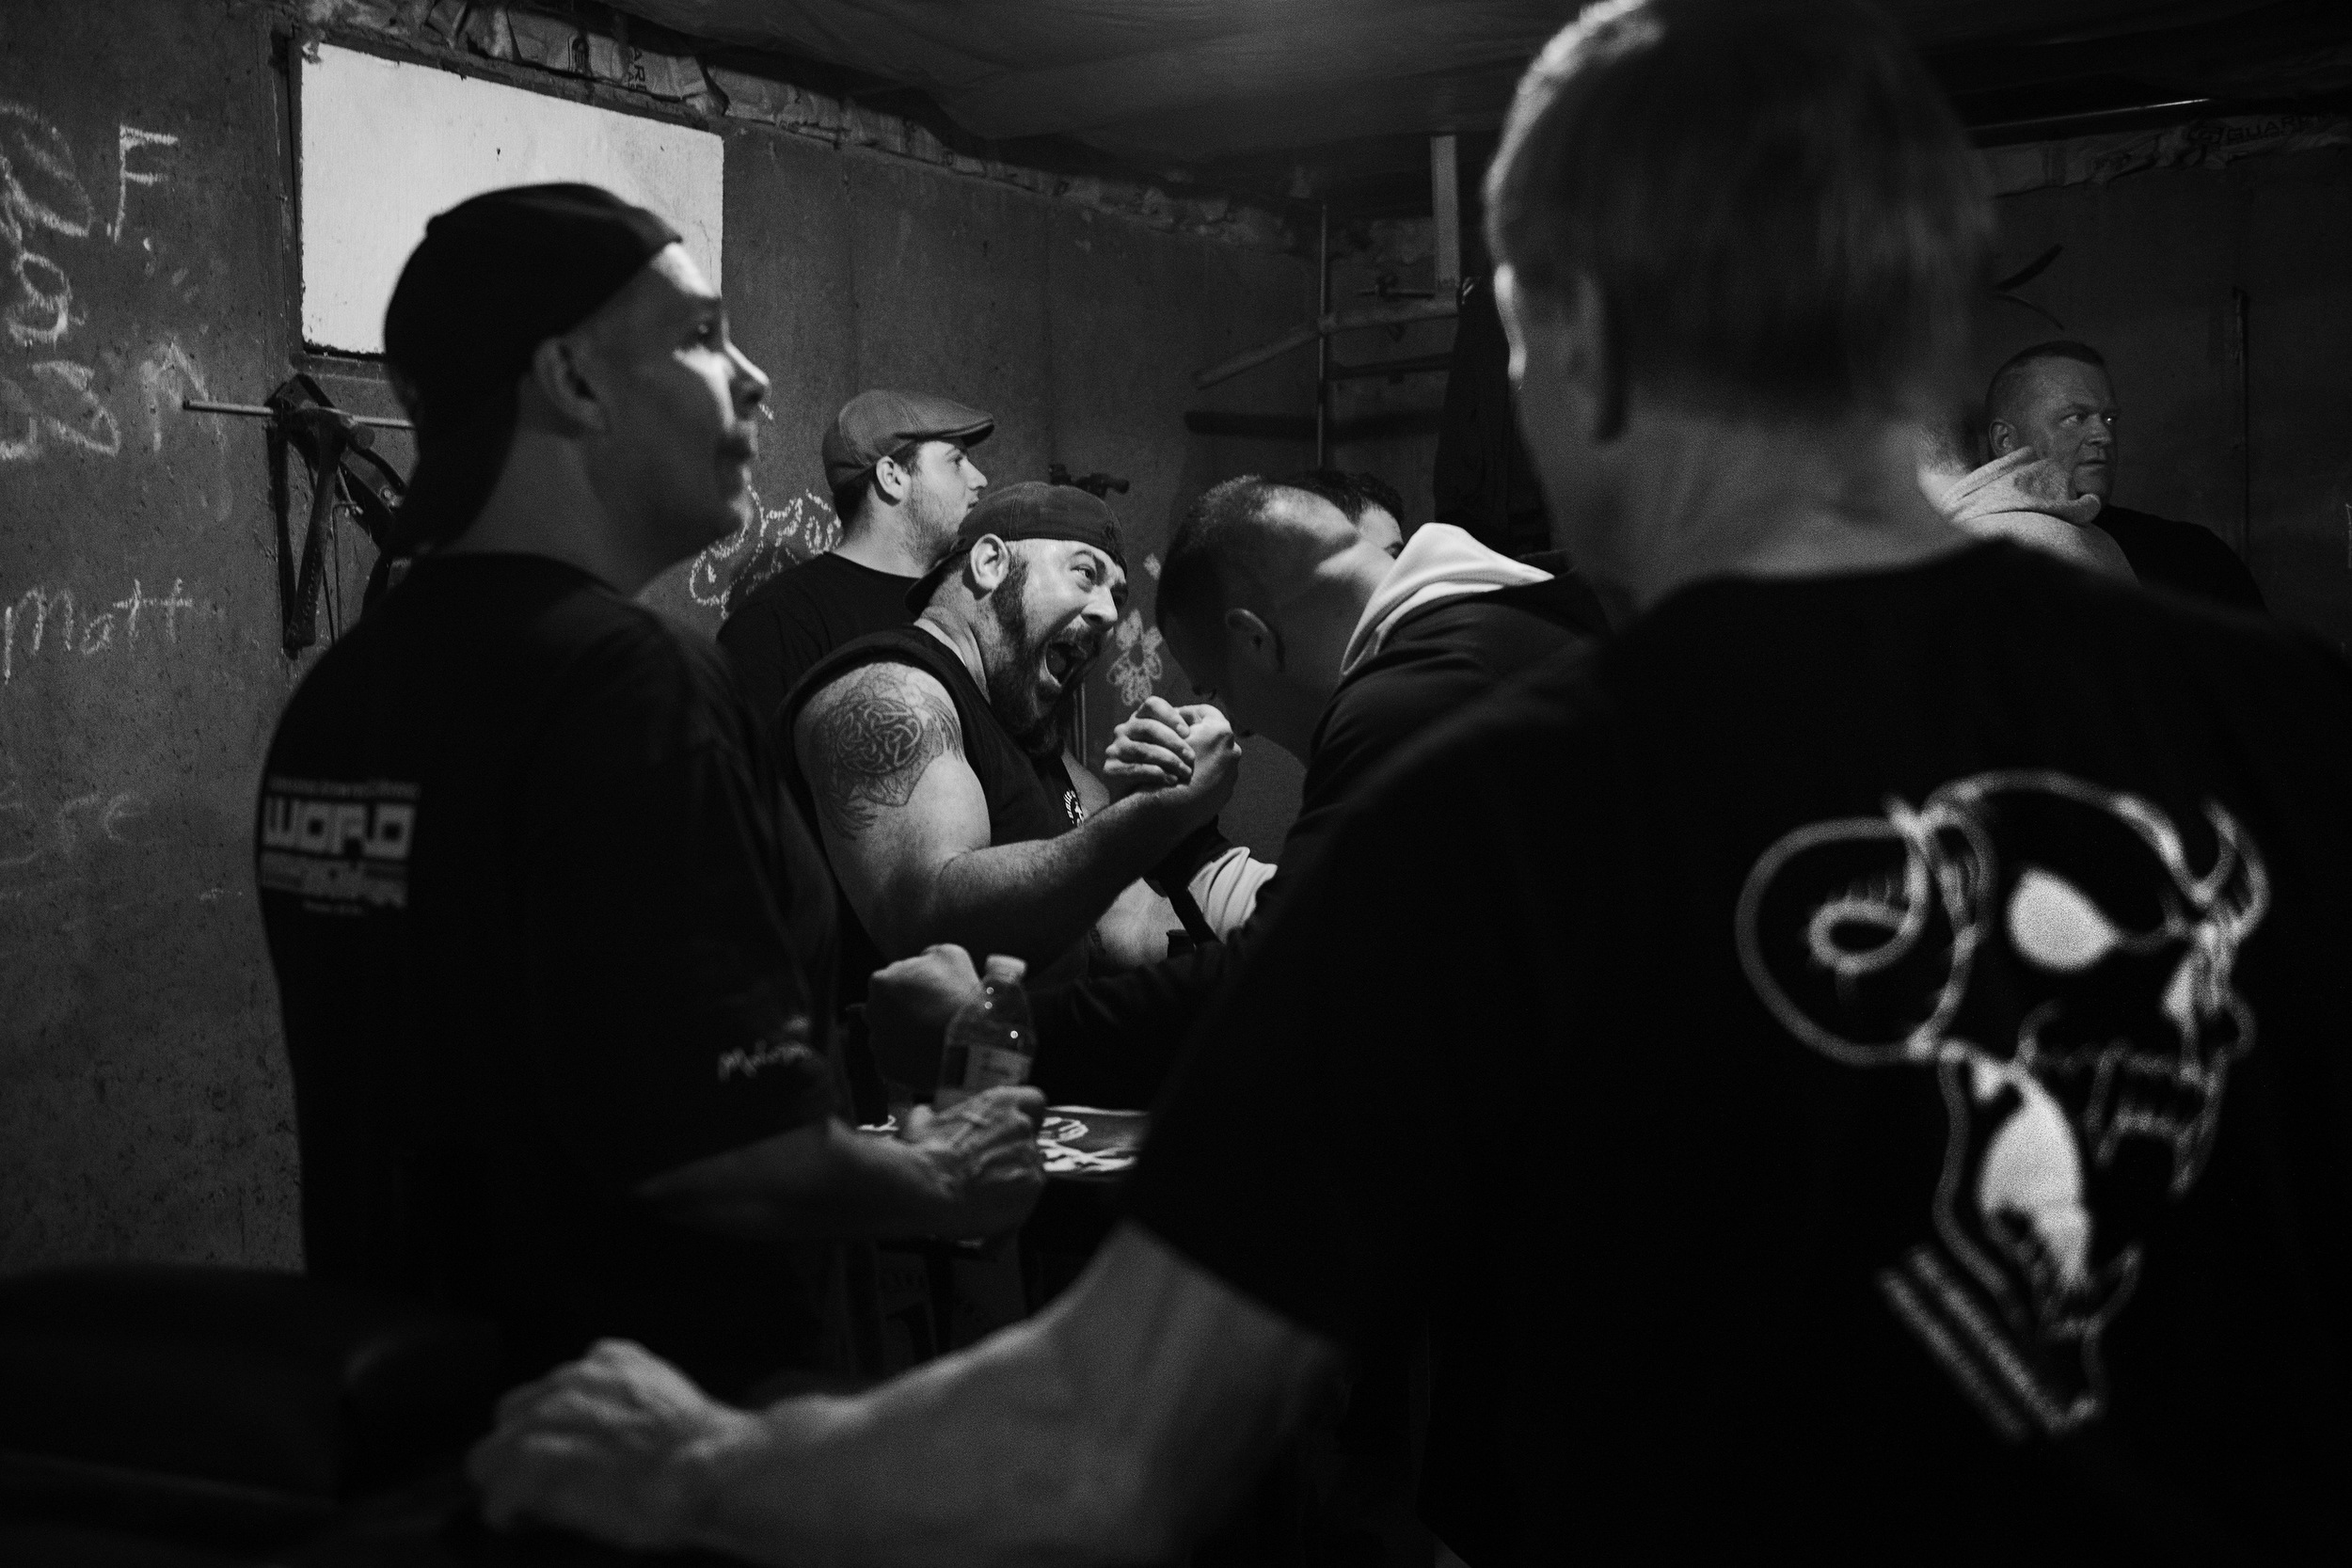 Devio watches other arm wrestler practice at Fitzsimmons house on April 7, 2016. (Photo by Adam Glanzman/GroundTruth)